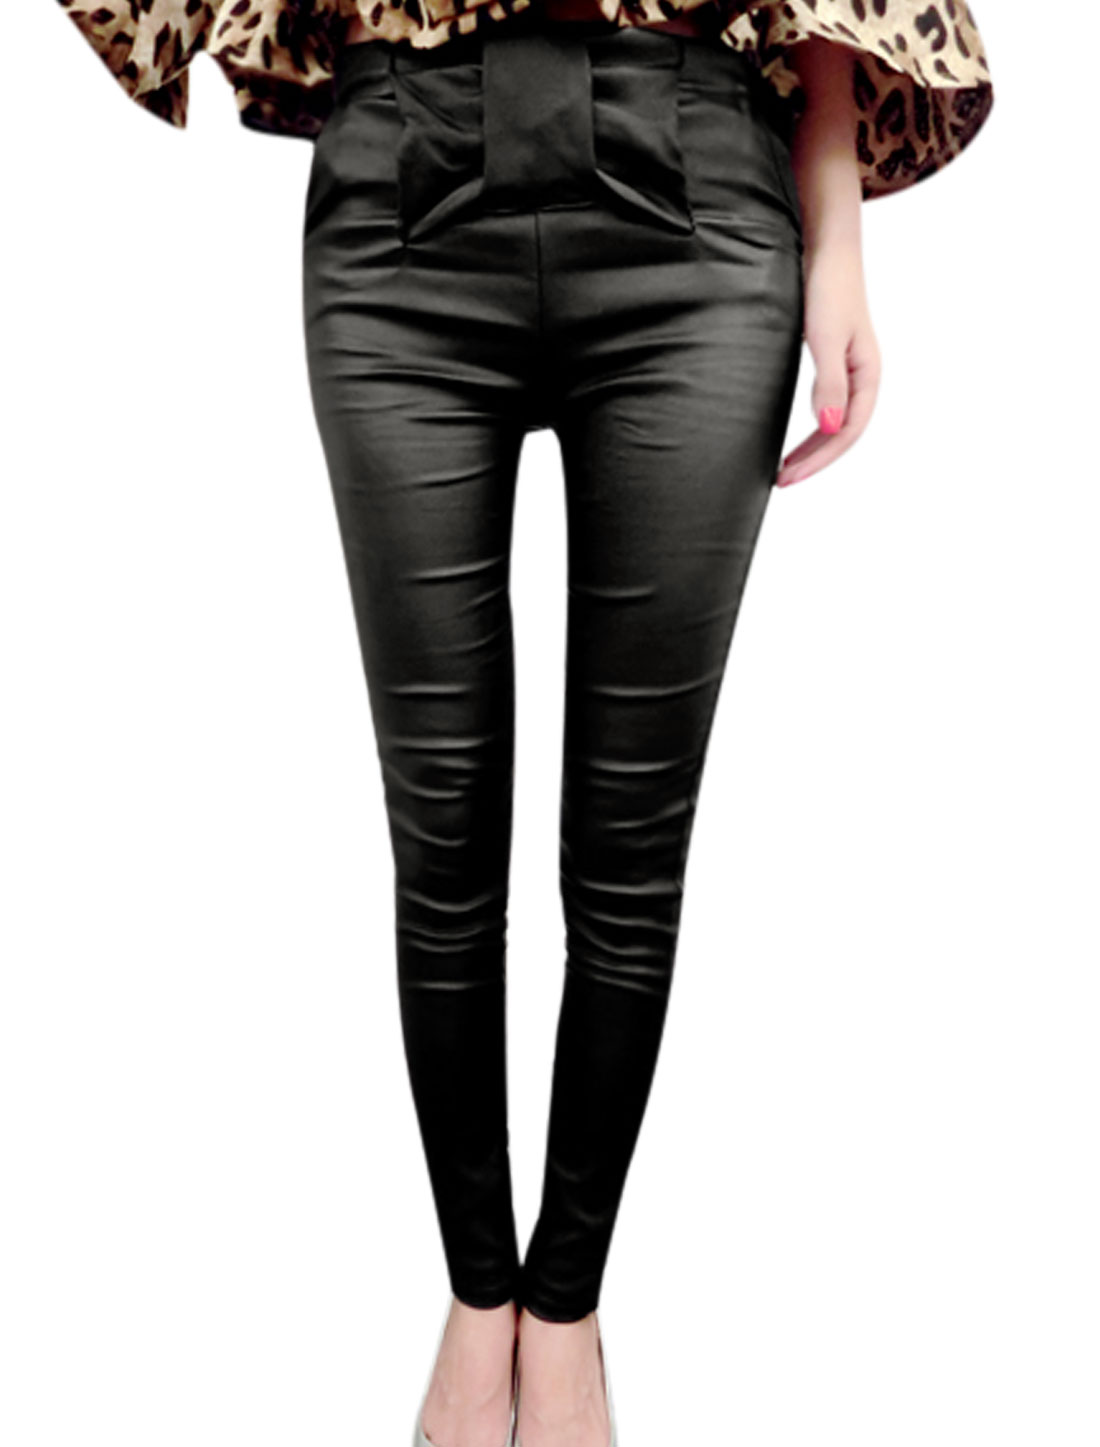 Ladies Black Butterfly Knot High Waist Zipper Side Imitation Leather Pants XS